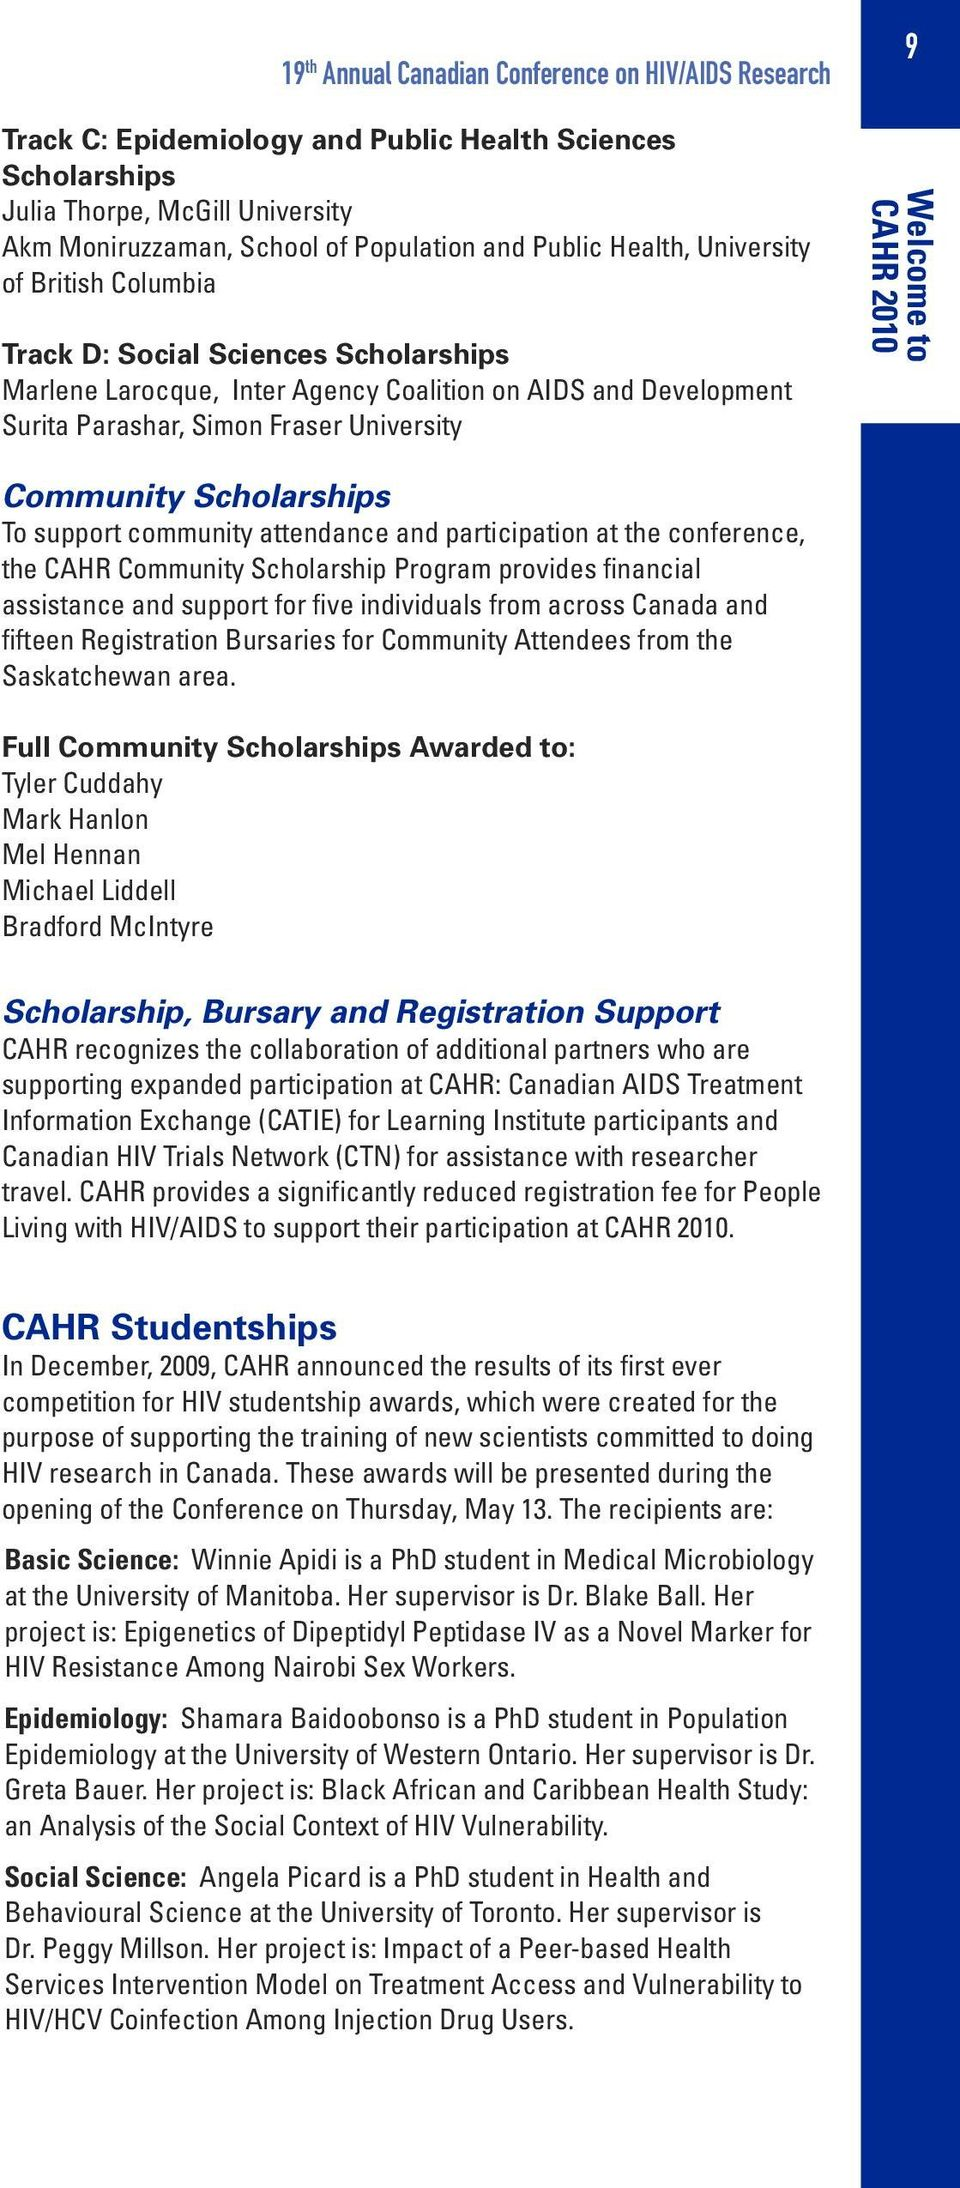 CAHR 2010 Community Scholarships To support community attendance and participation at the conference, the CAHR Community Scholarship Program provides financial assistance and support for five